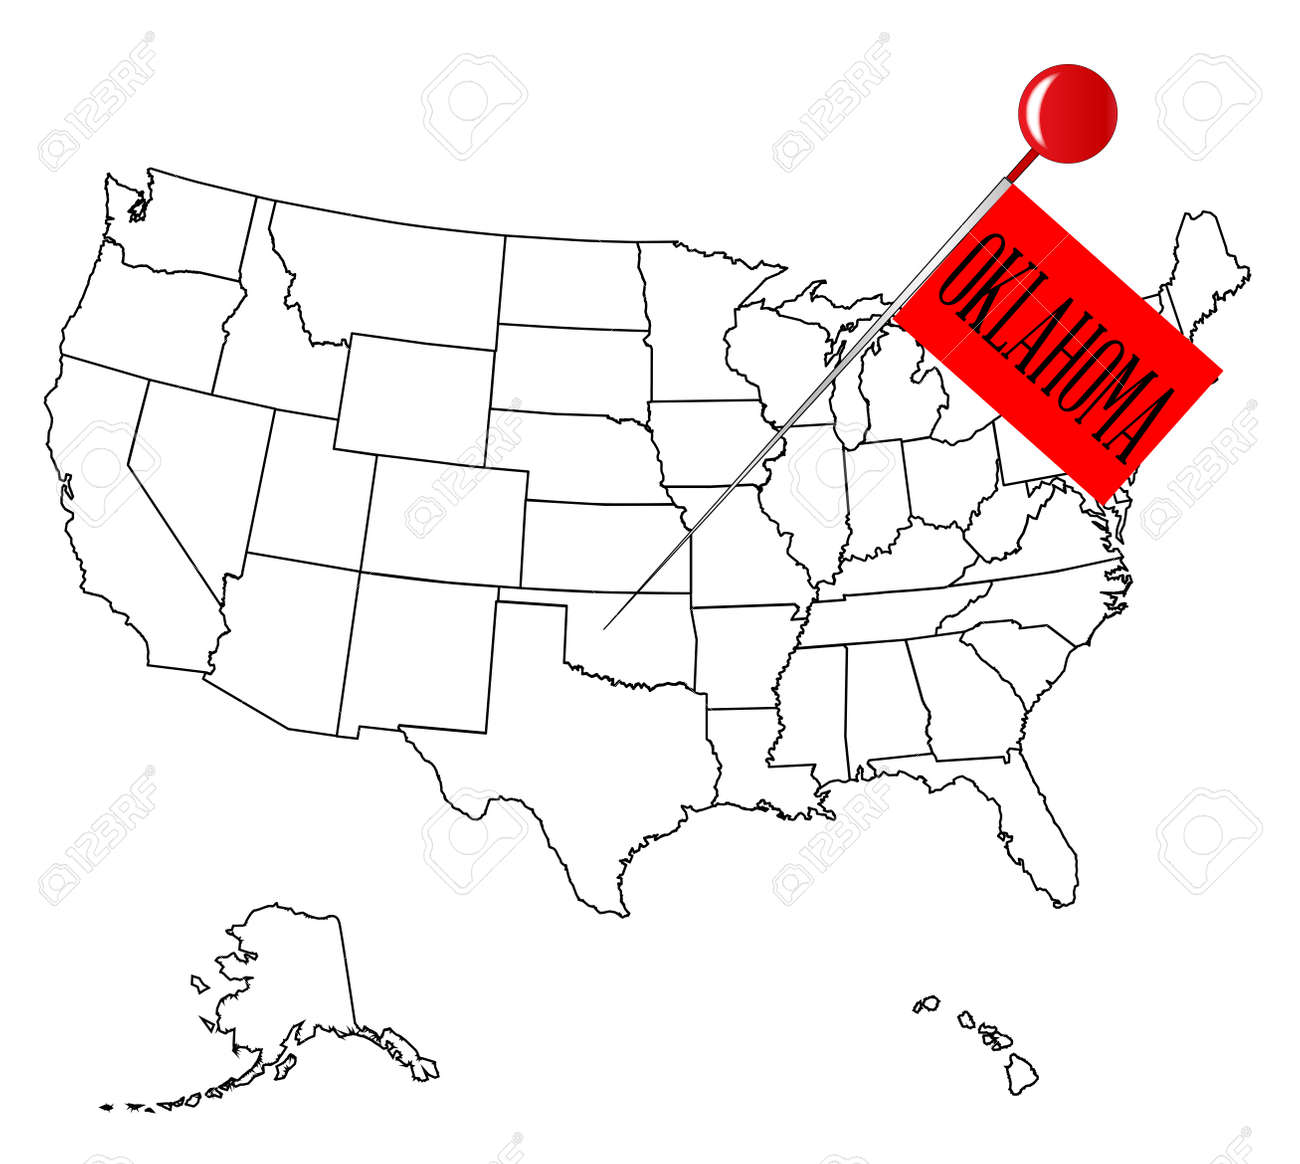 an outline map of usa with a knob pin in the state of oklahoma stock vector